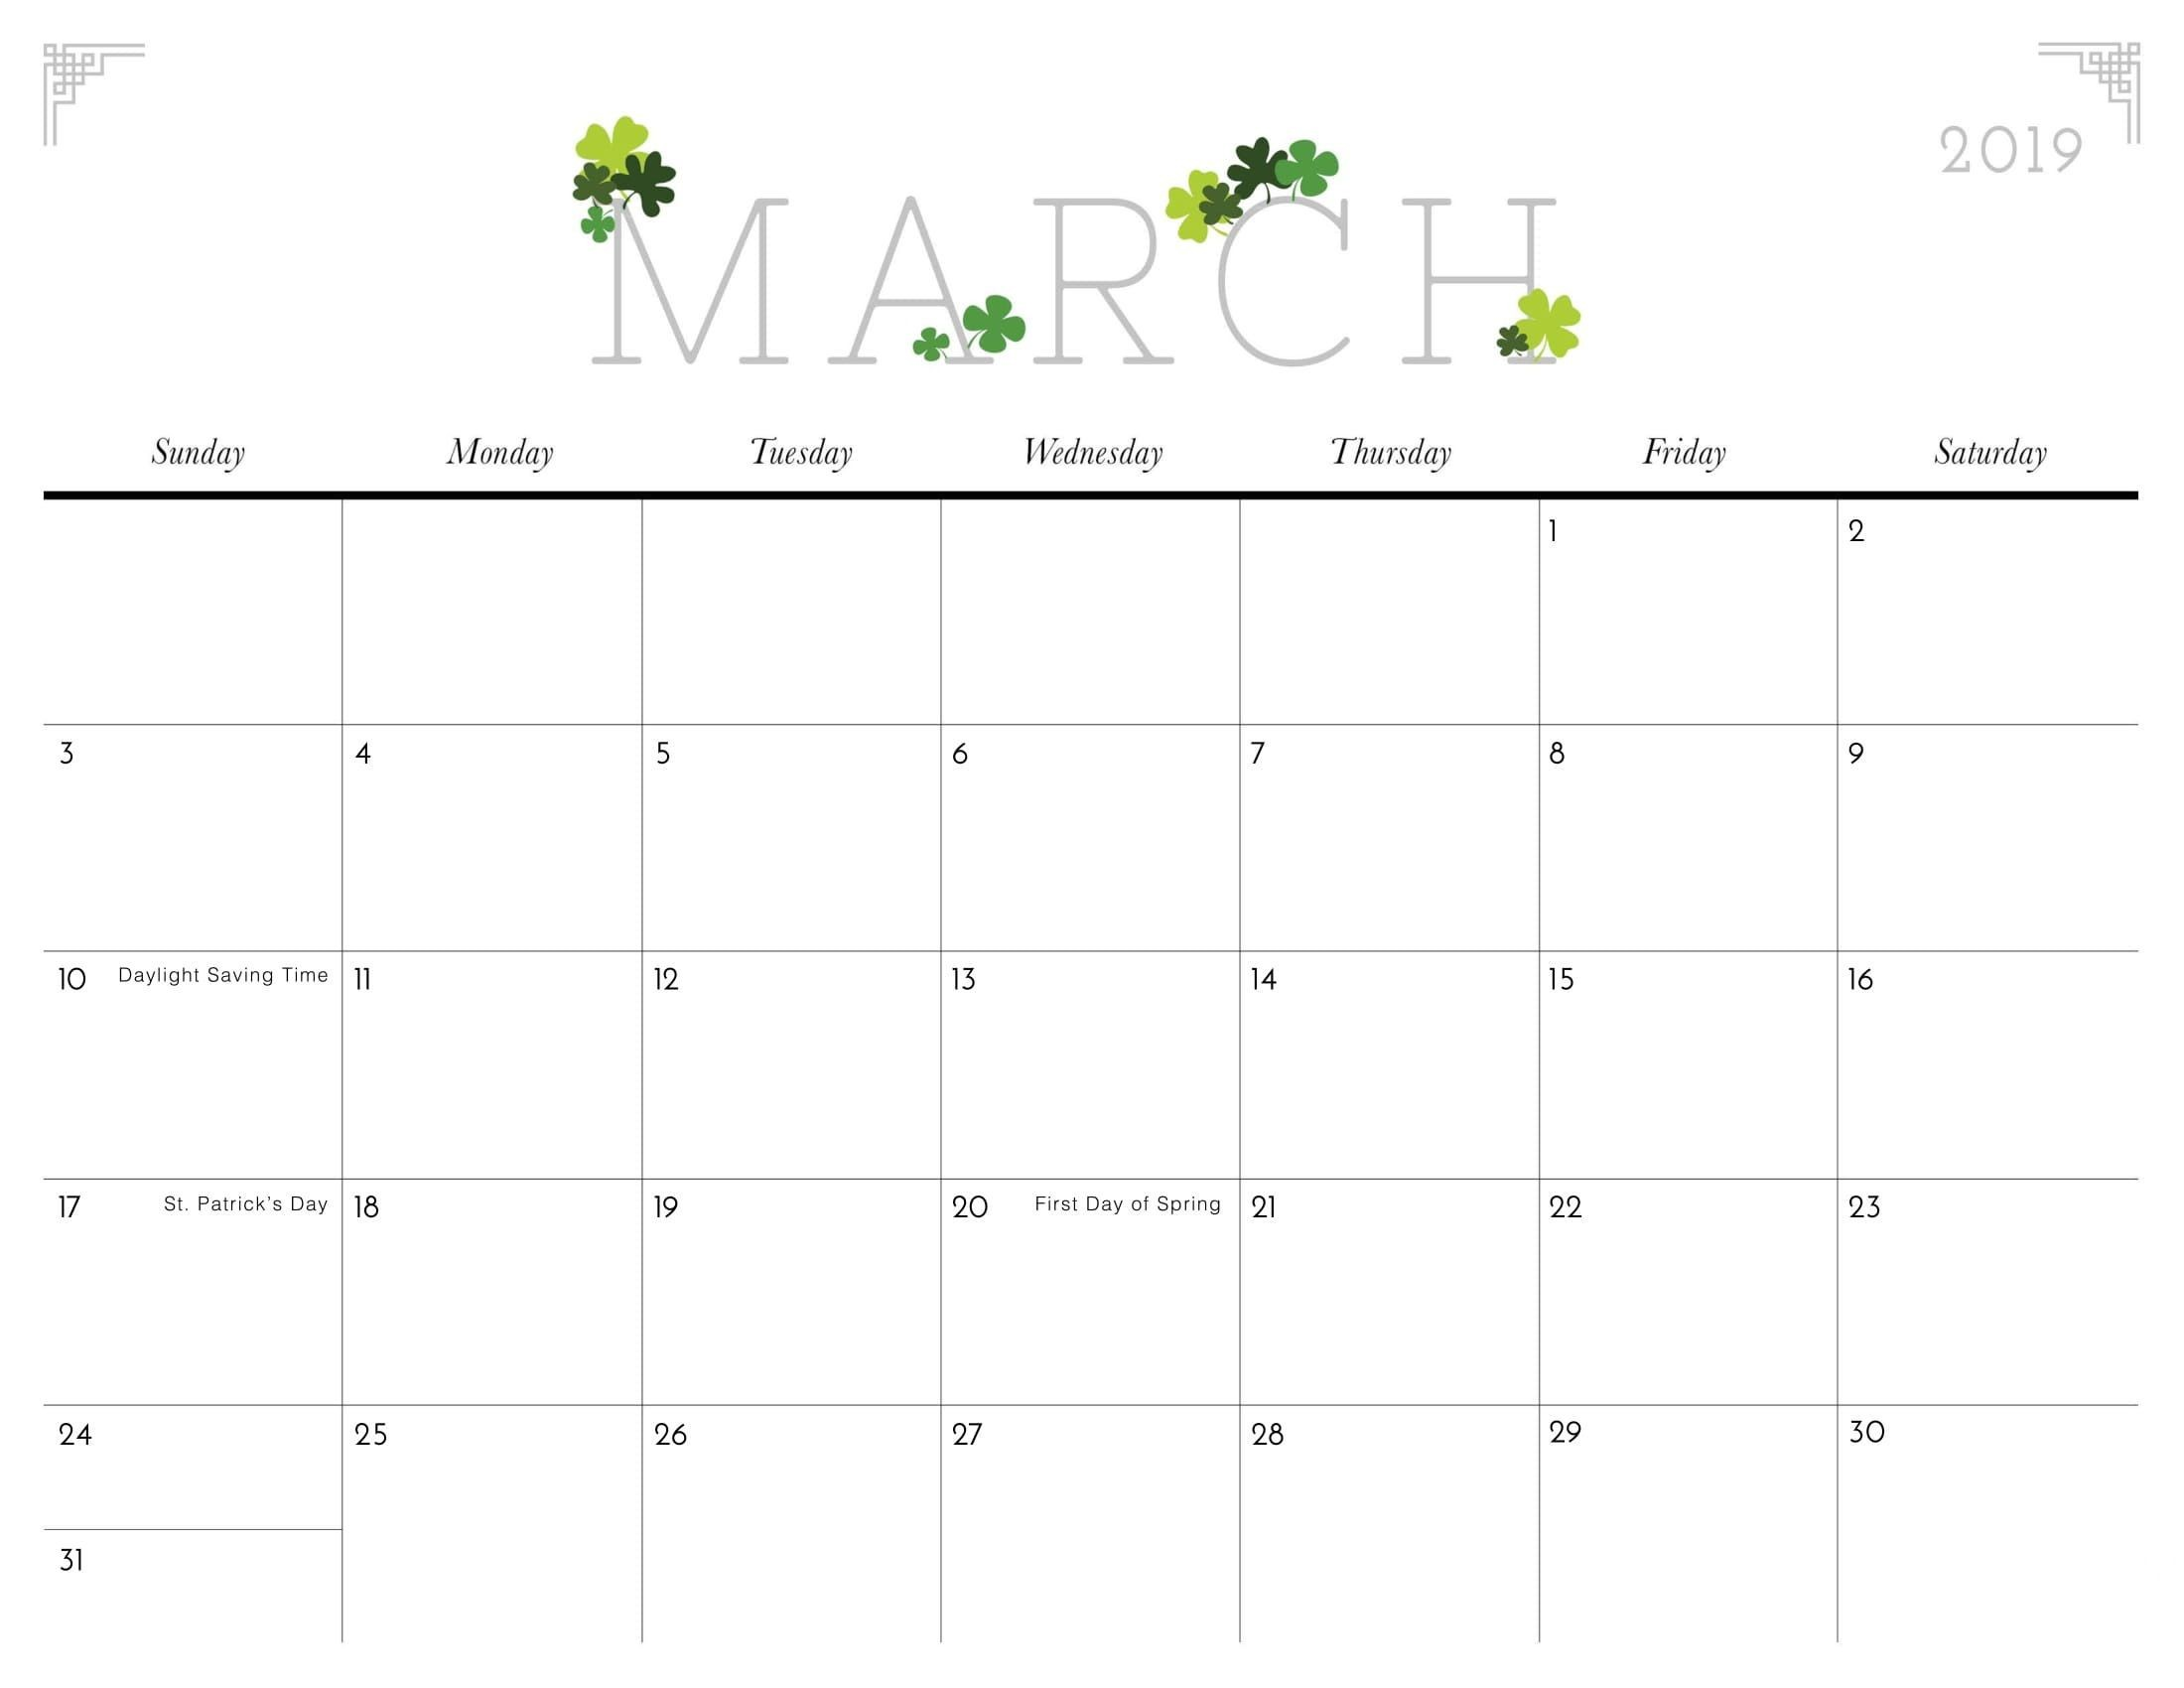 March Calendar Coloring Page Mejores Y Más Novedosos Cute March 2019 Calendar Template Of March Calendar Coloring Page Más Reciente Free Printable Minion Invitations Free Minion Coloring Pages Awesome